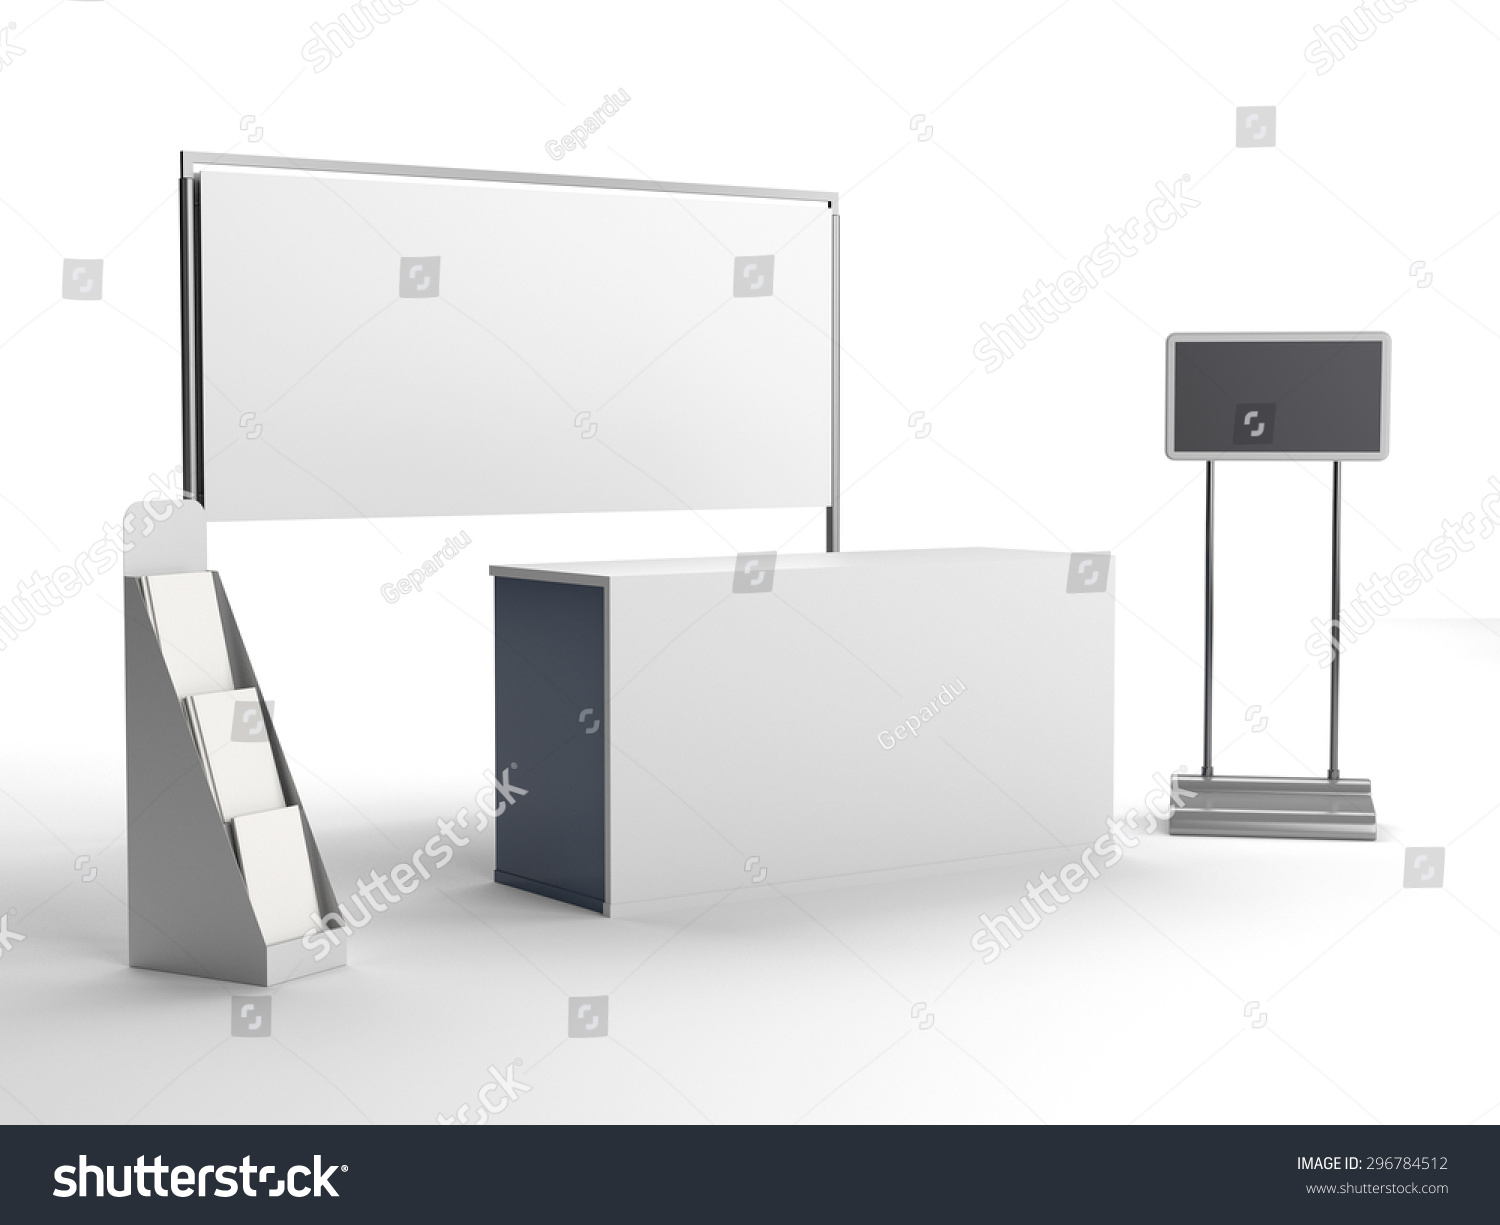 Exhibition Stall Vector : Isolated stall exhibition tv display stock illustration